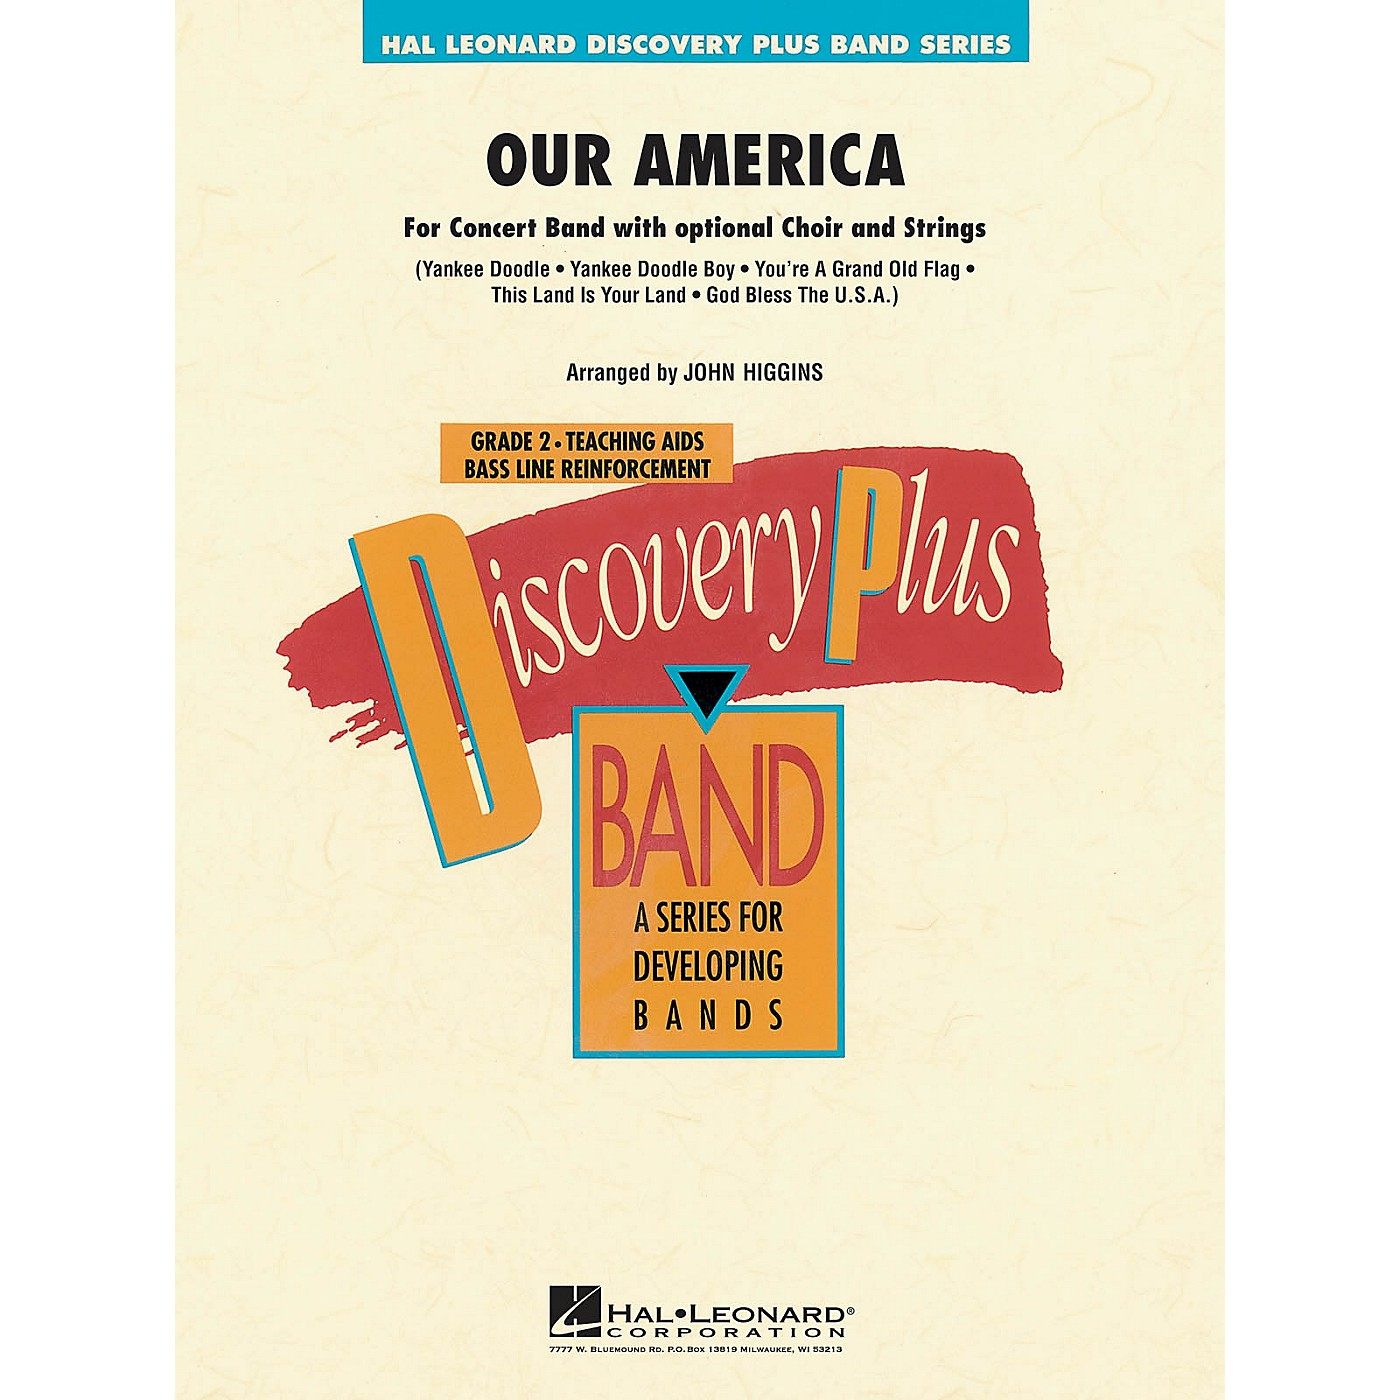 Hal Leonard Our America (for Band with Optional Choir) - Discovery Plus Band Level 2 arranged by John Higgins thumbnail